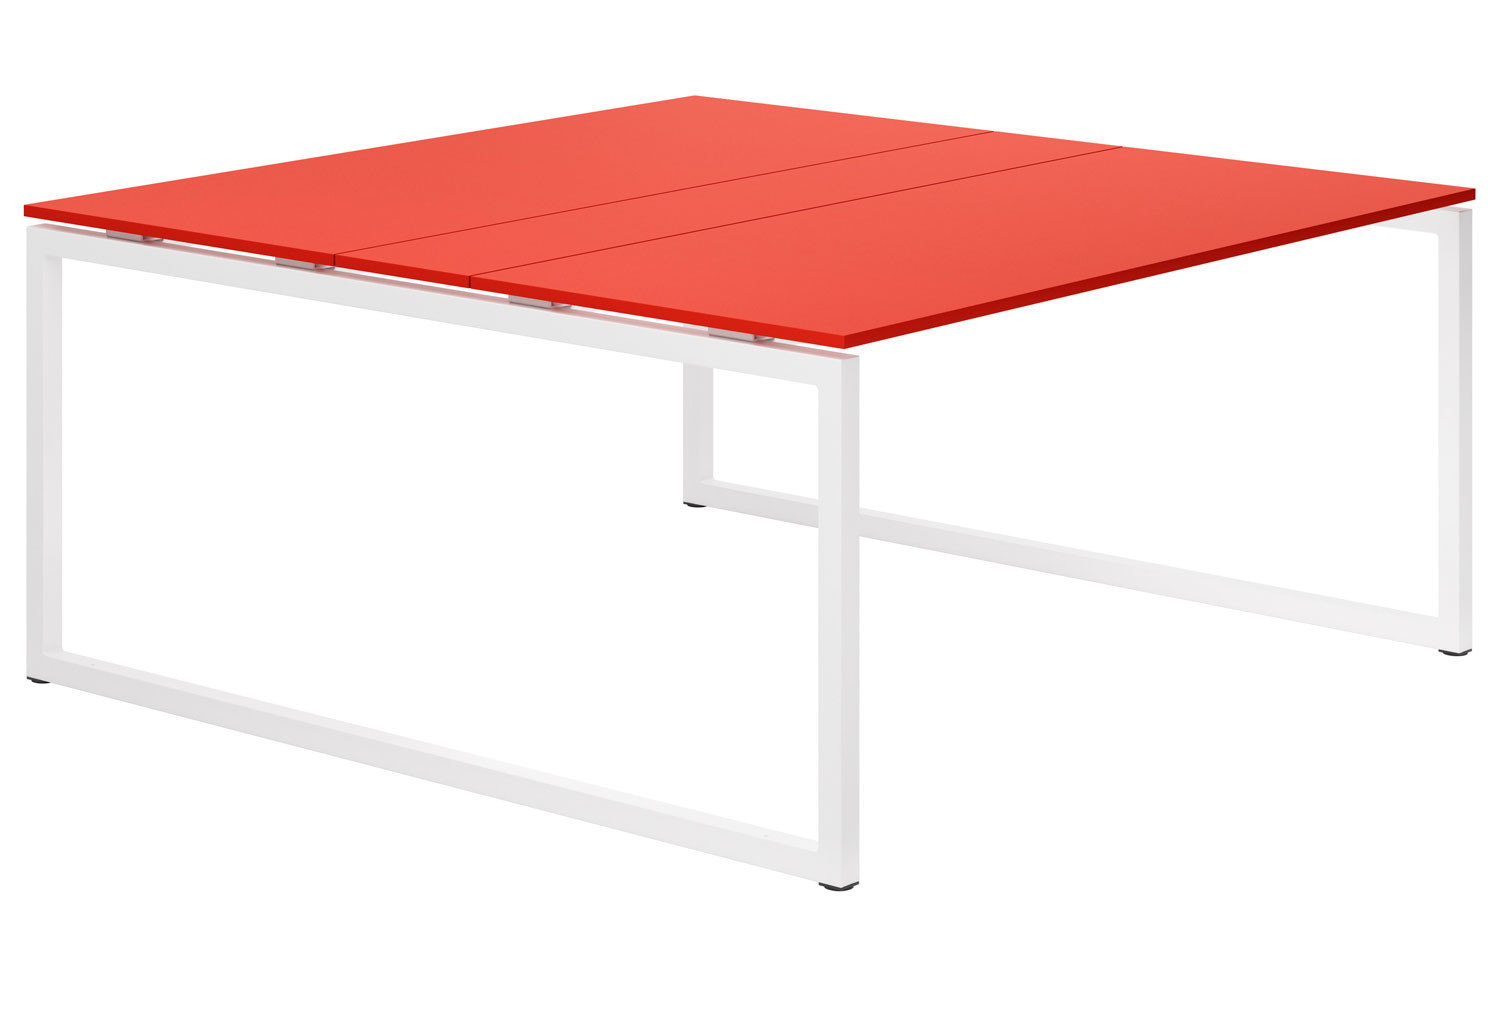 Campos Hooped Leg 6-8 Person Meeting Table (Red)